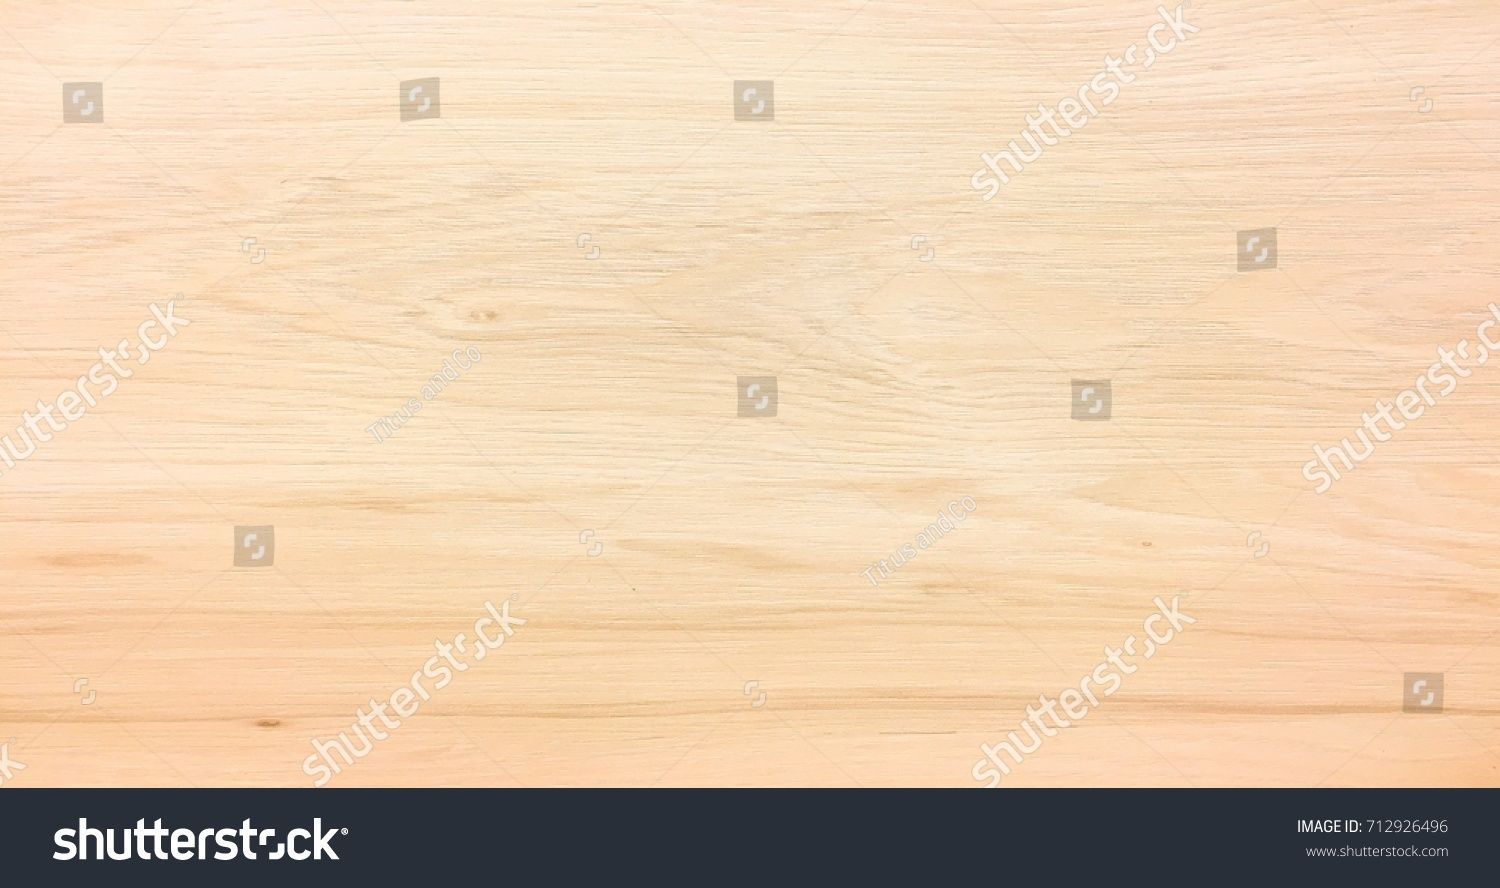 Light wood texture background surface with old natural pattern or old wood texture table top view. Grunge surface with wood texture background. Vintage timber texture background. Rustic table top view #Sponsored , #AFFILIATE, #surface#natural#pattern#background #woodtexturebackground Light wood texture background surface with old natural pattern or old wood texture table top view. Grunge surface with wood texture background. Vintage timber texture background. Rustic table top view #Sponsored , # #woodtexturebackground